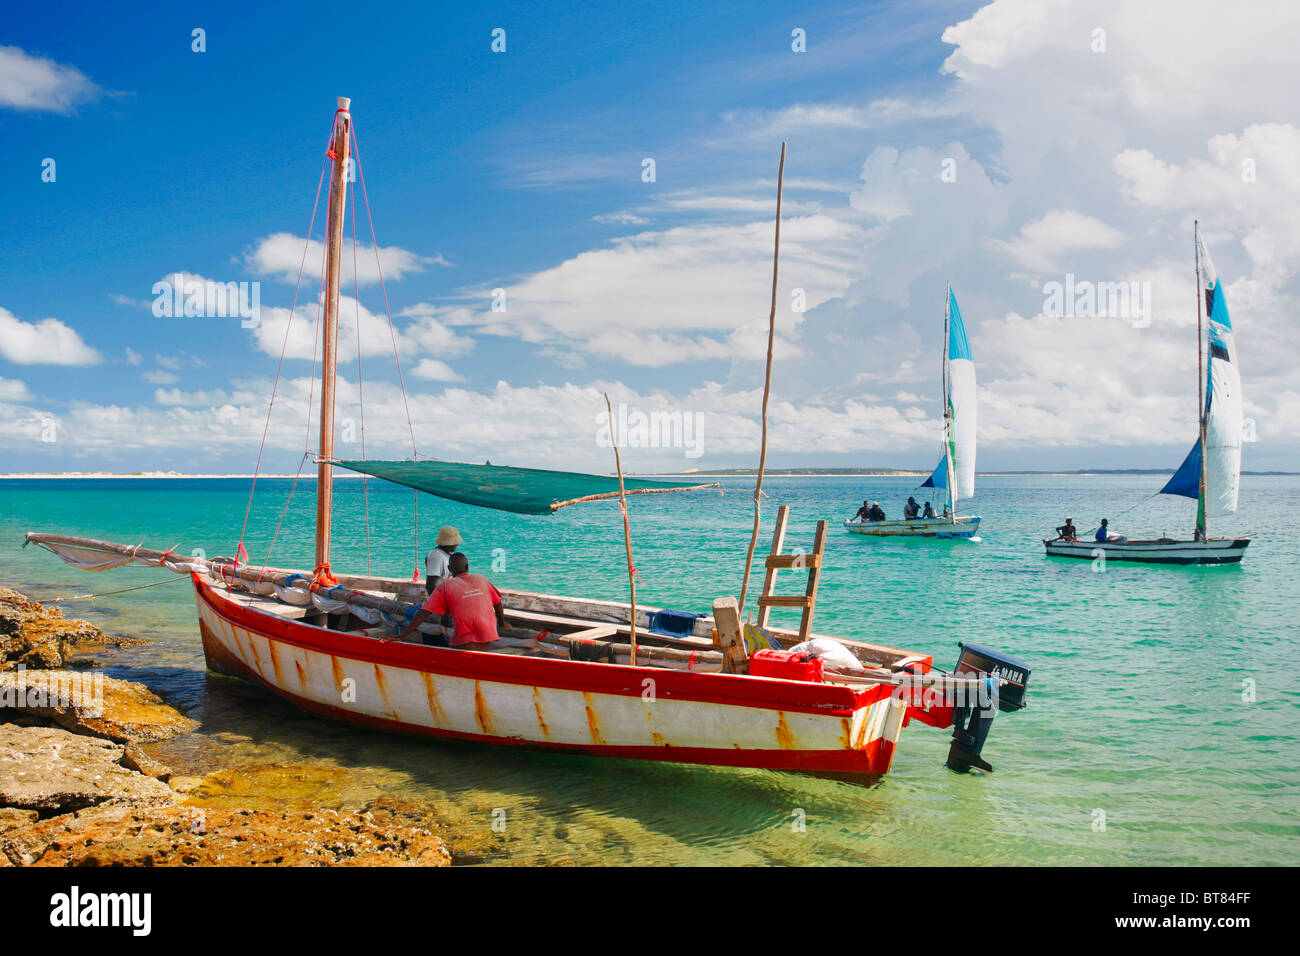 Dhows in the Bazaruto Archipelago in Mozambique. - Stock Image